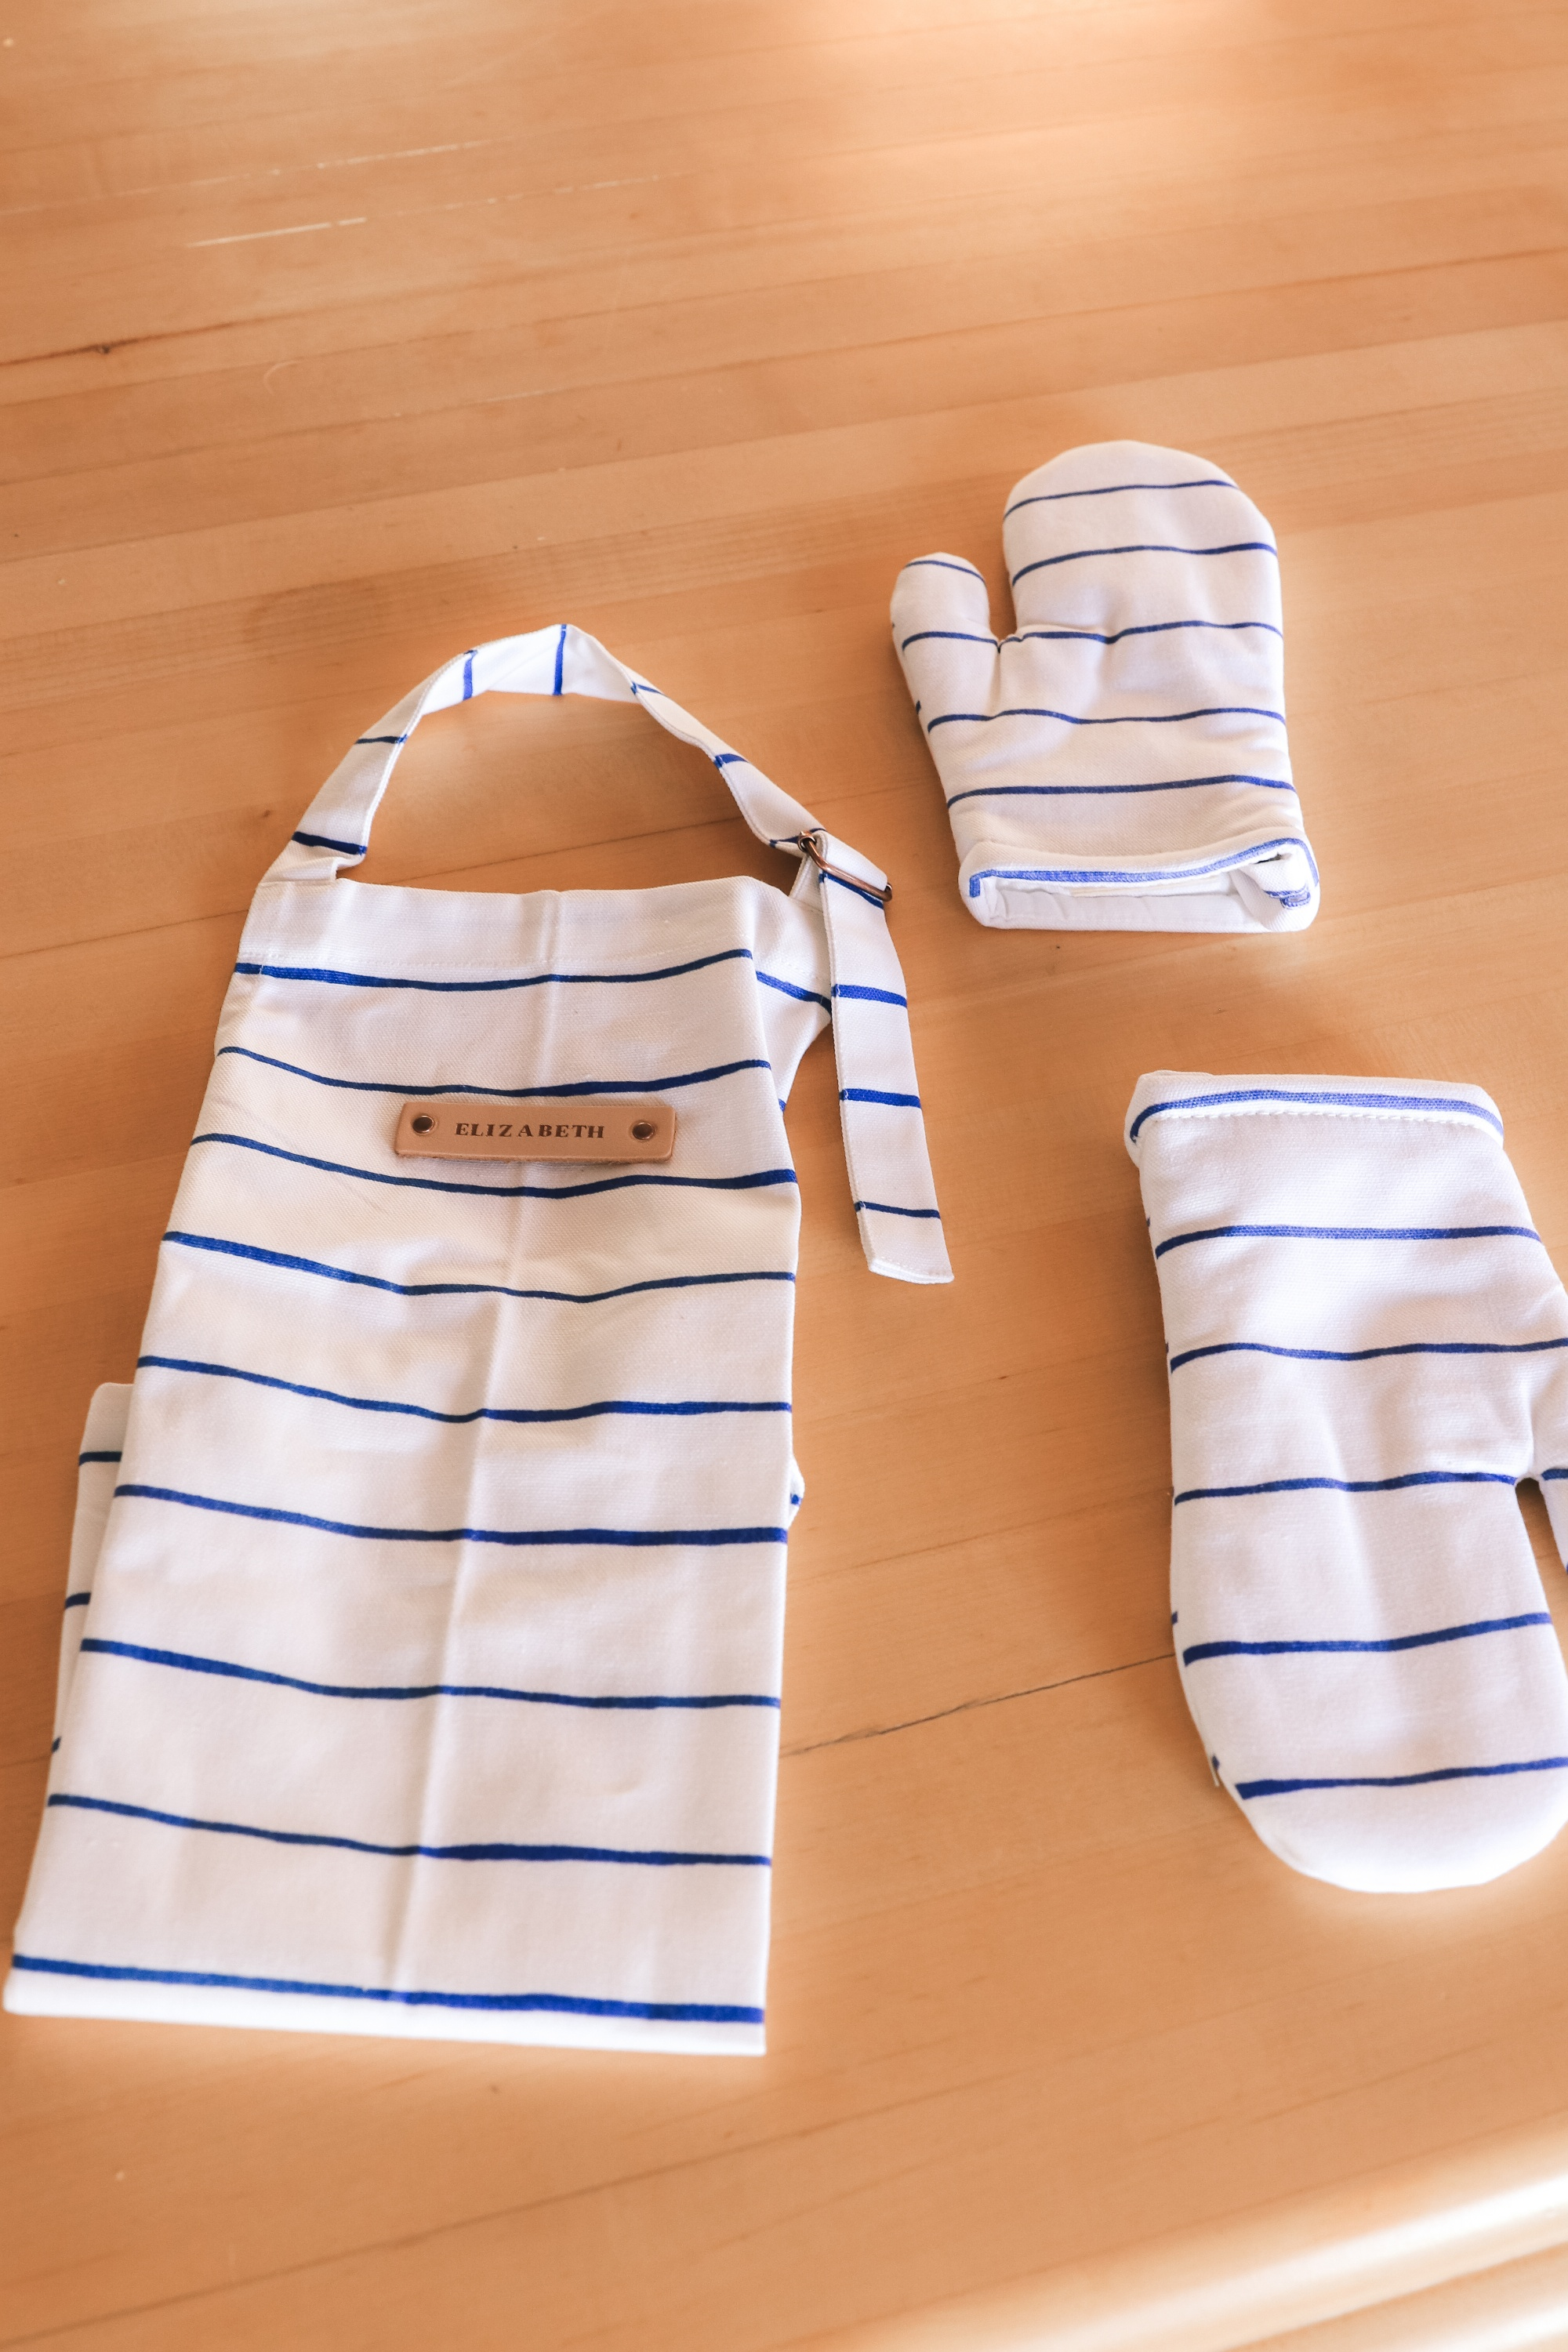 """Personalized Gifts, Erin Busbee of Busbee Style sharing a blue and white striped apron with """"Elizabeth"""" on it for her daughter and matching blue and white striped oven mitts from Minted for her daughter in Telluride, Colorado"""